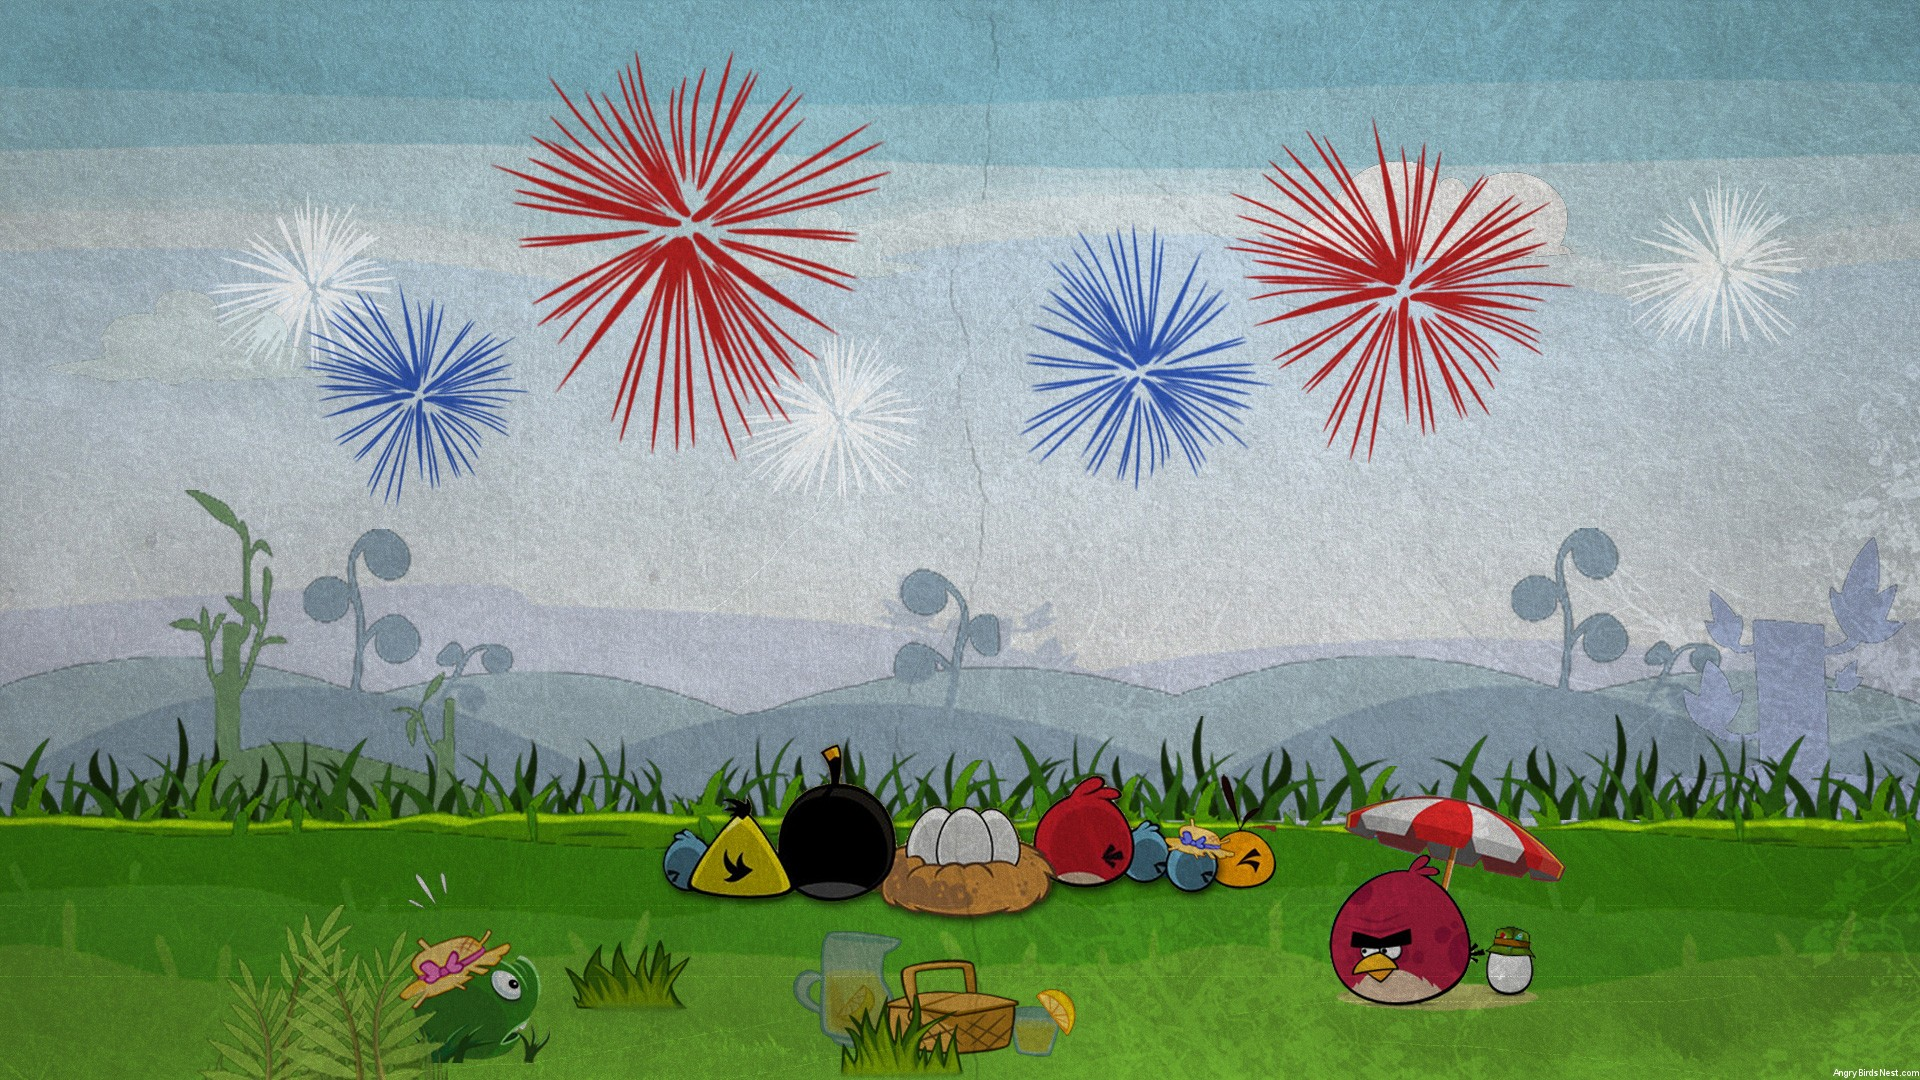 Angry Birds Fourth of July Wallpaper Desktop 1920x1080